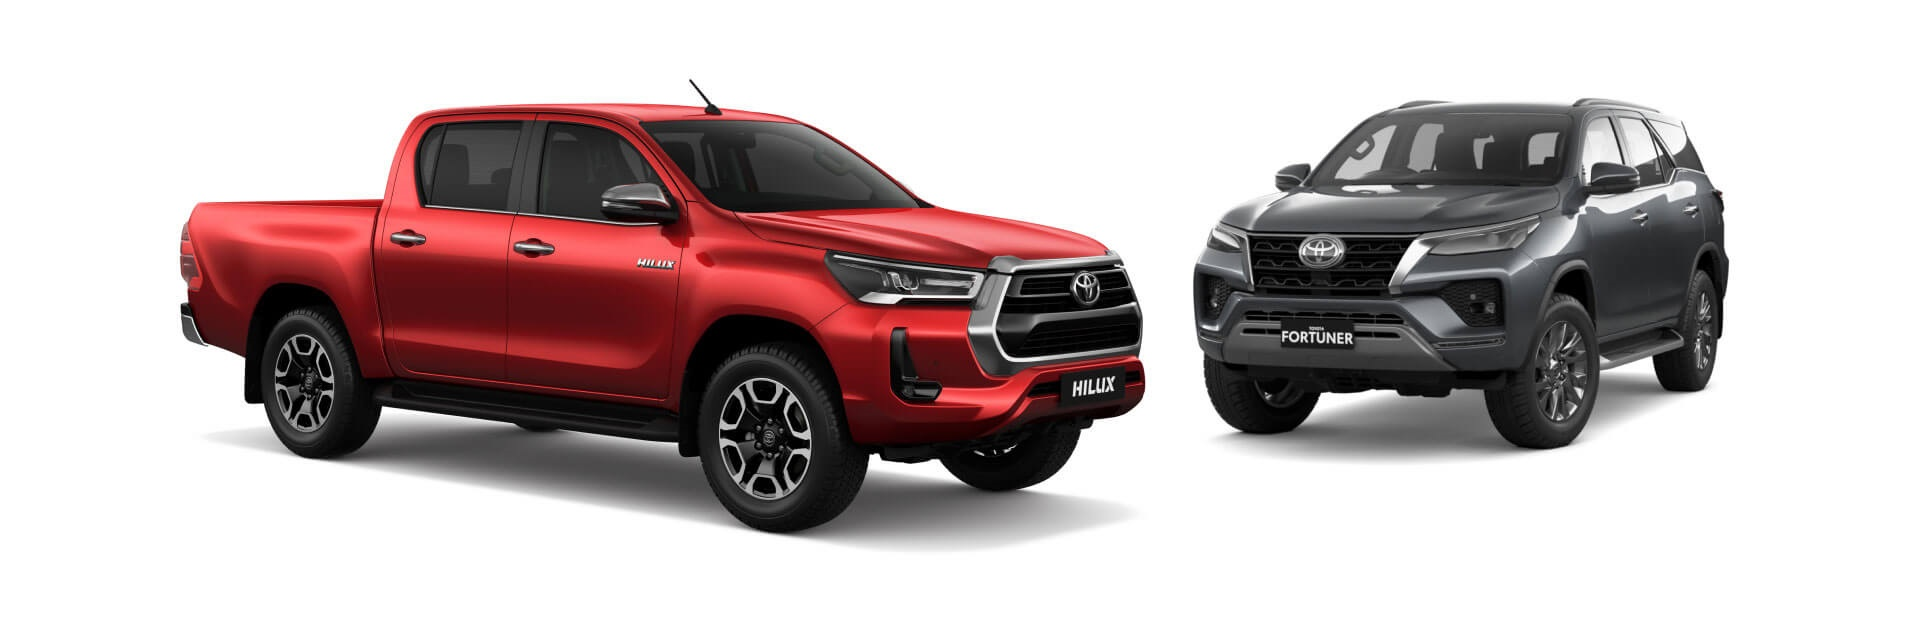 New 2020 Hilux and Fortuner